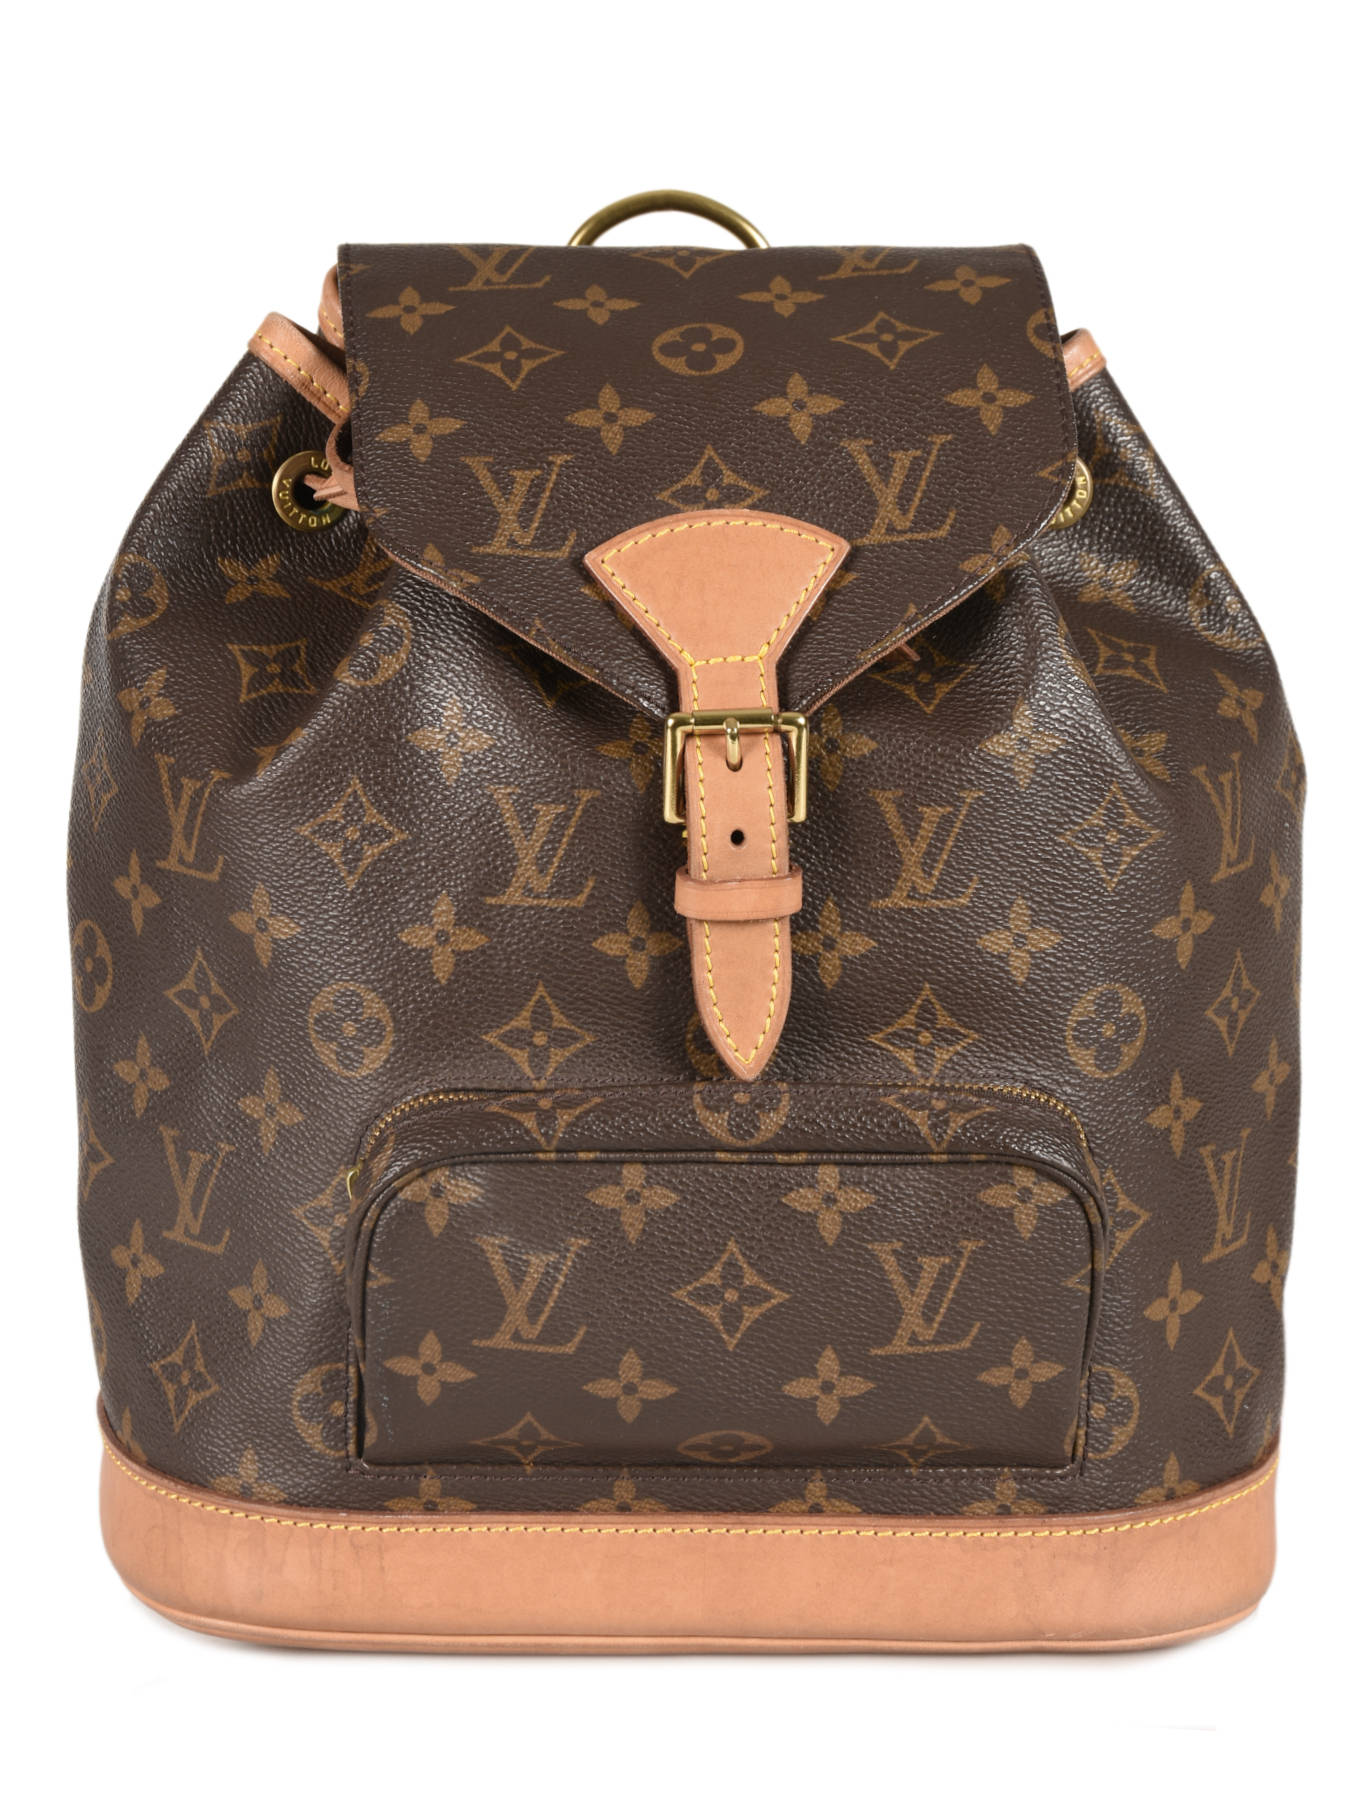 b5f383eb9f Sac A Dos Louis Vuitton Montsouris Occasion | Stanford Center for ...